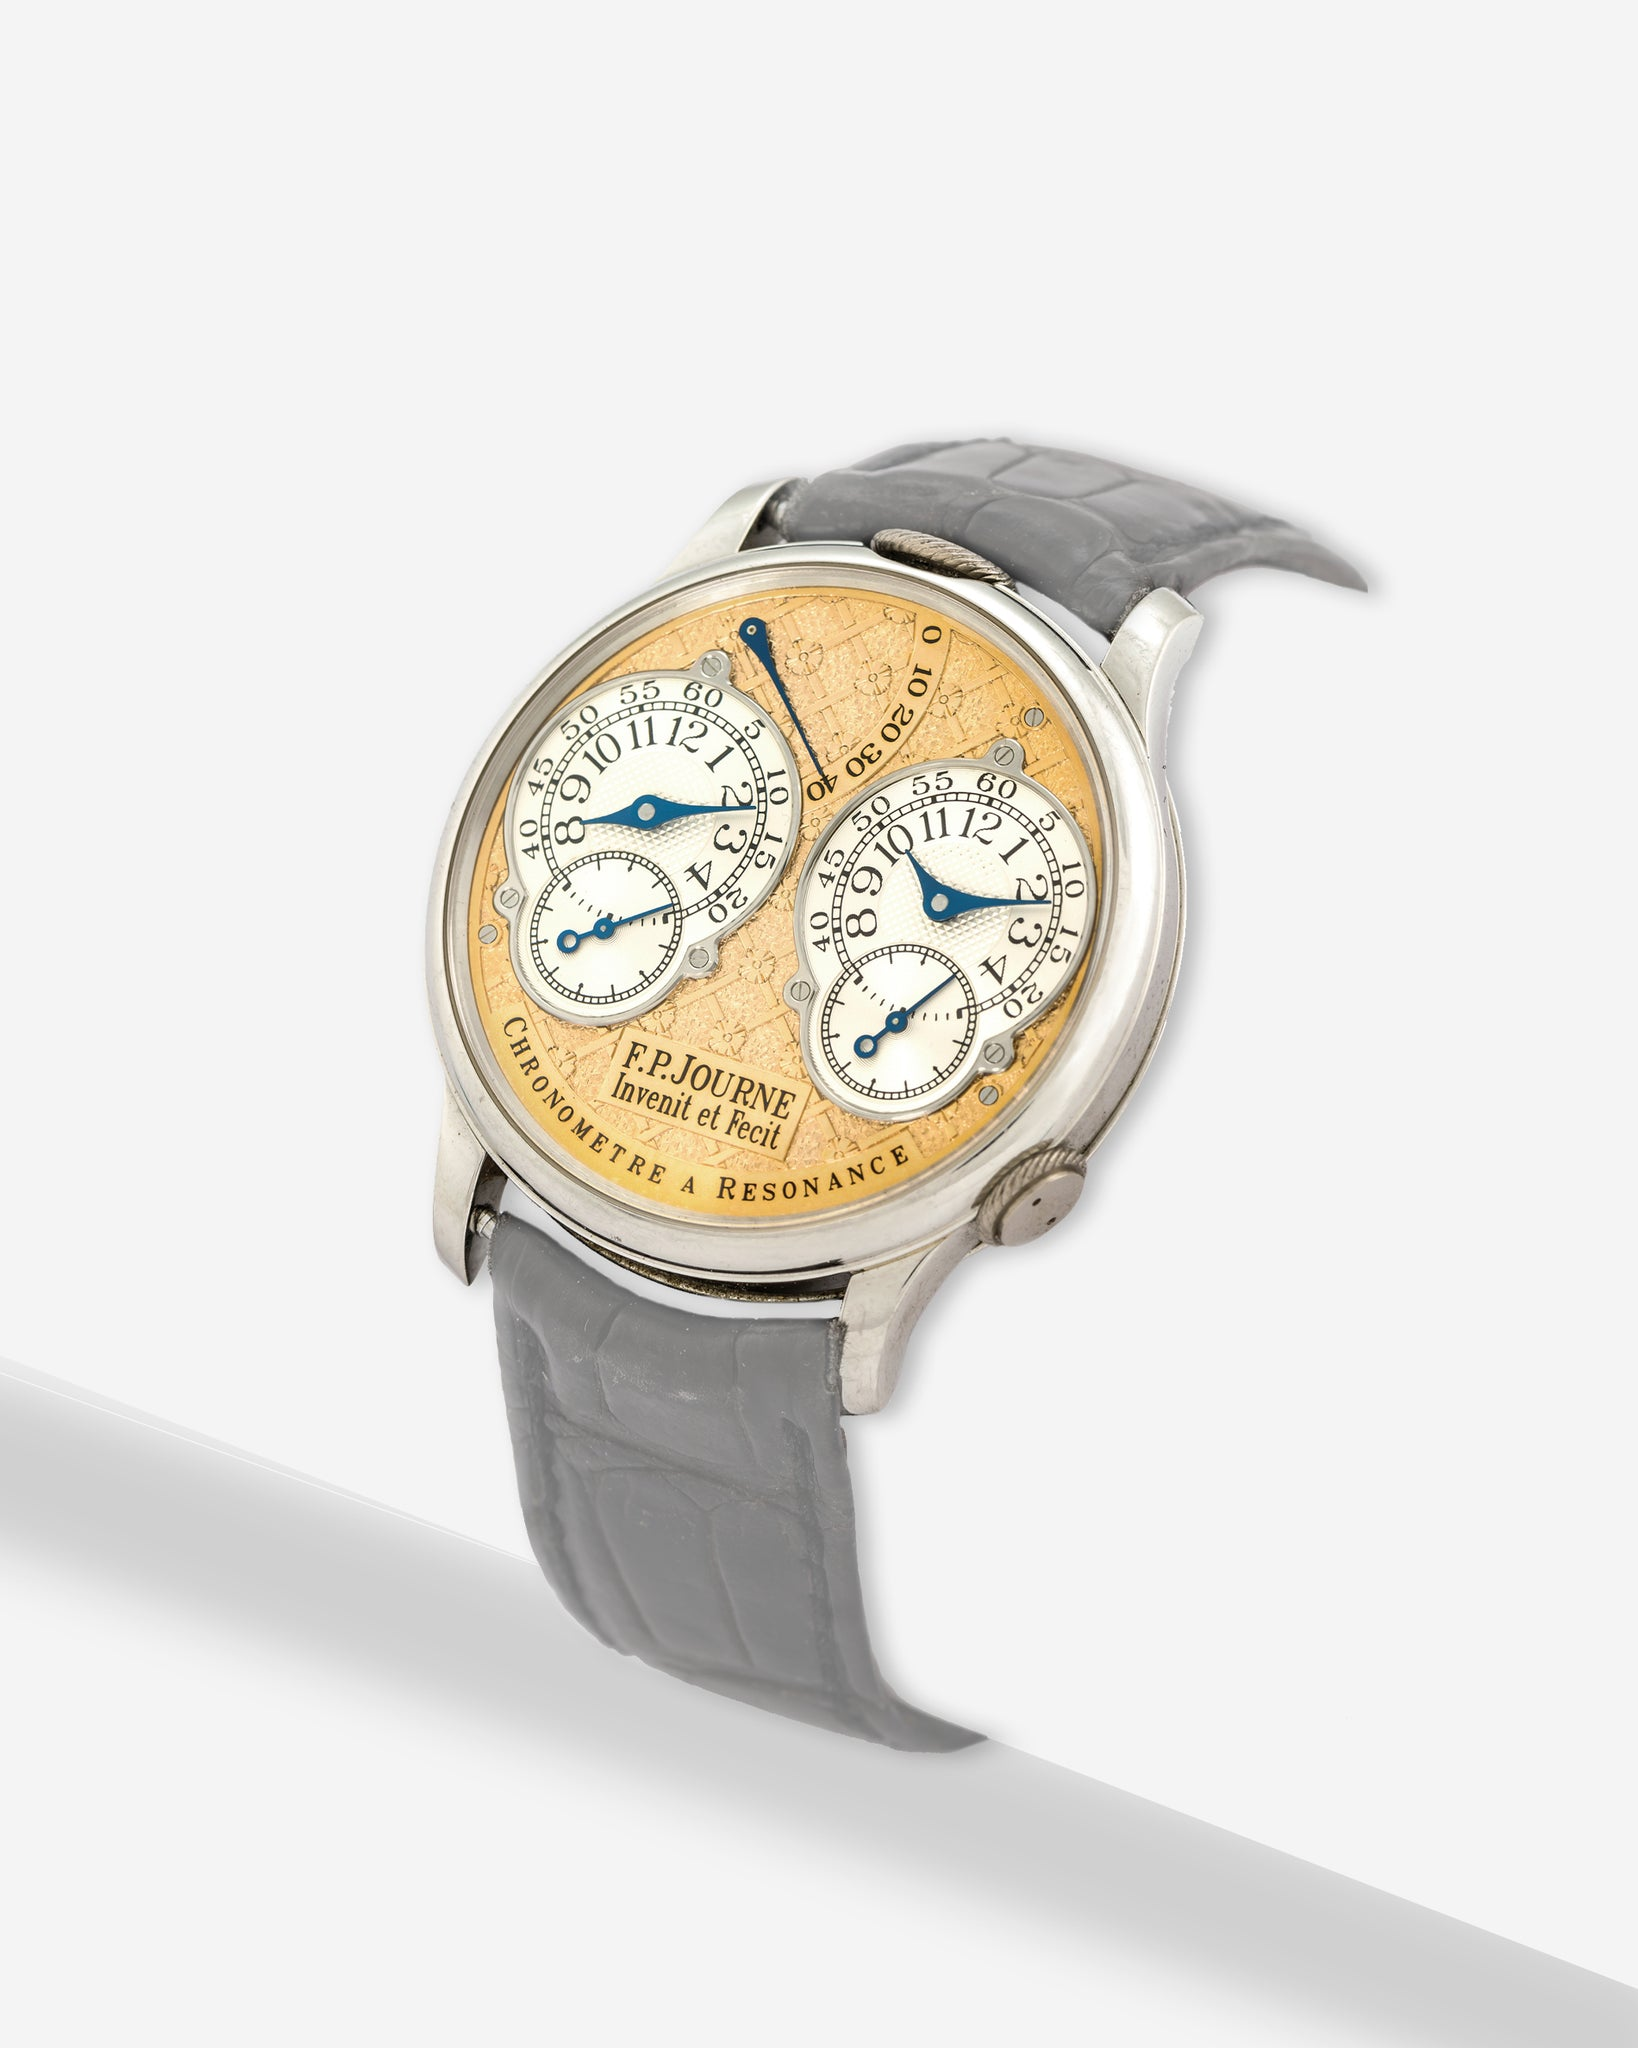 F.P. Journe Resonance with a rare Regency dial engraving